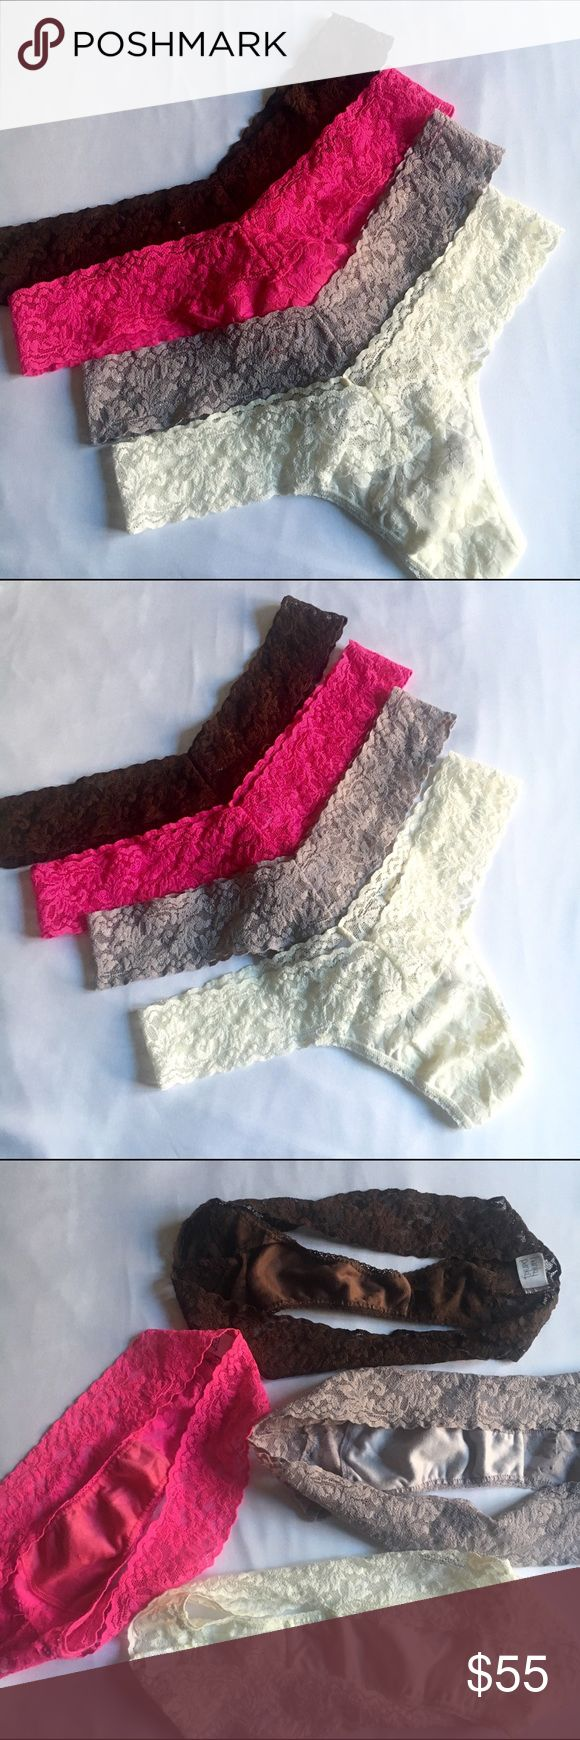 🎉SALE🎉 NWOT Hanky Panky set of 4 lace thongs New without tags Hanky Panky lace thongs in brown, hot pink, lilac and cream. These 4 were part of a bigger set. These have not been worn, but have been washed prior to selling. Comes from a pet-free, smoke-free home. Hanky Panky Intimates & Sleepwear Panties